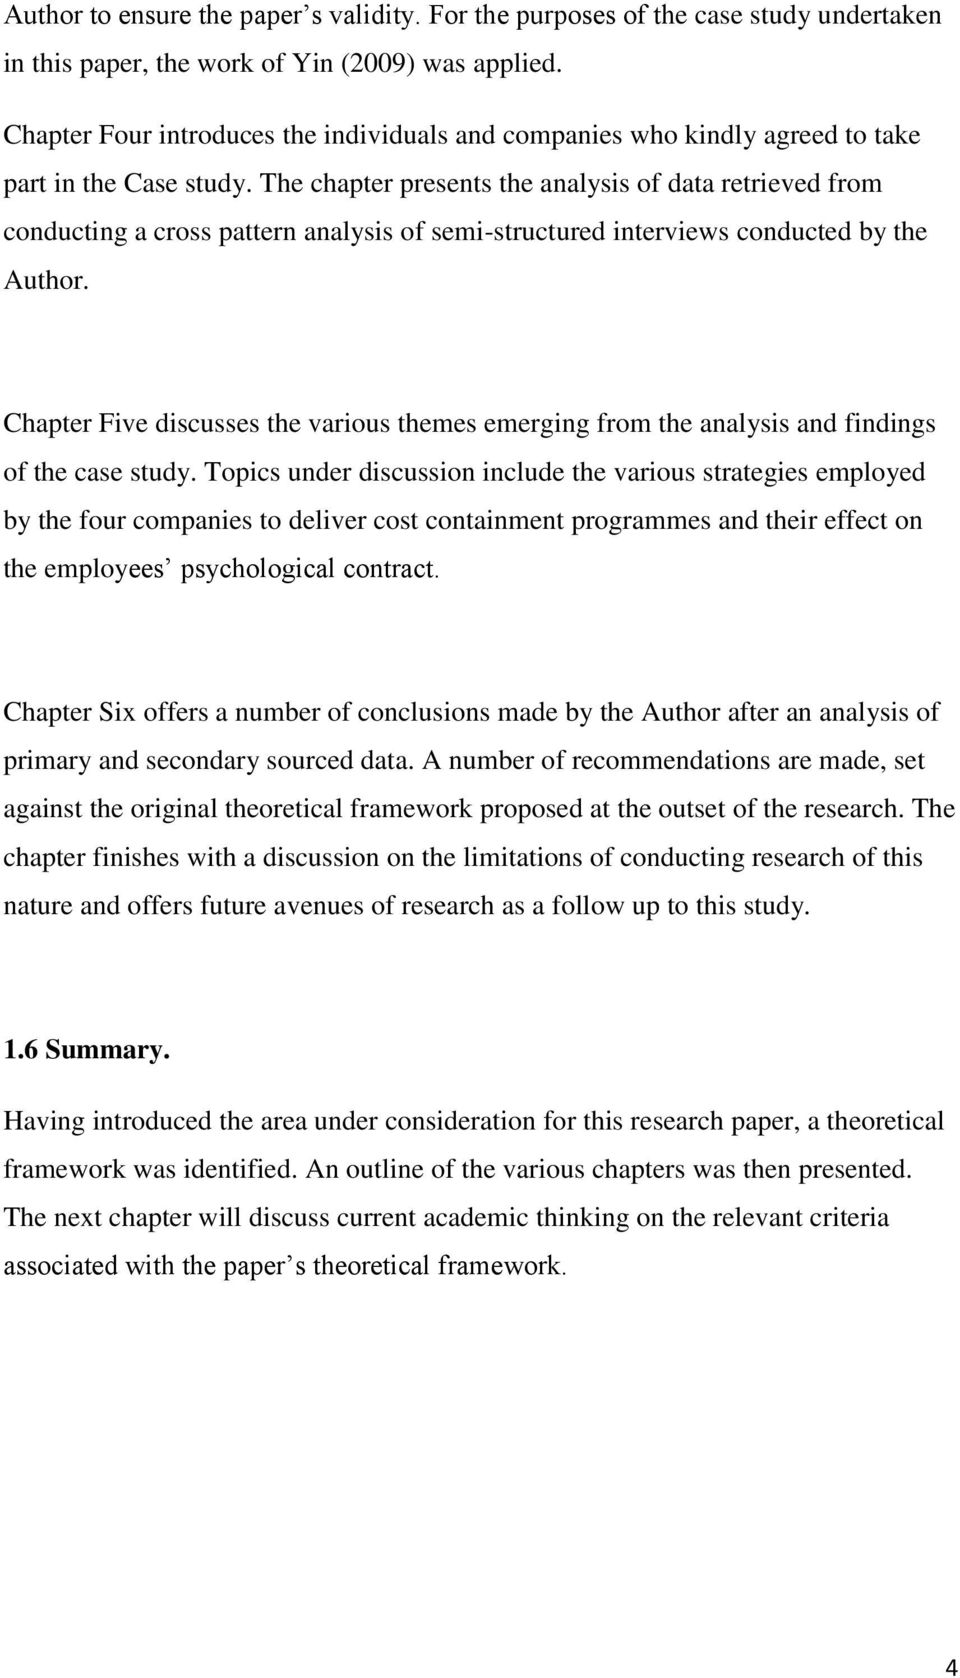 The chapter presents the analysis of data retrieved from conducting a cross pattern analysis of semi-structured interviews conducted by the Author.